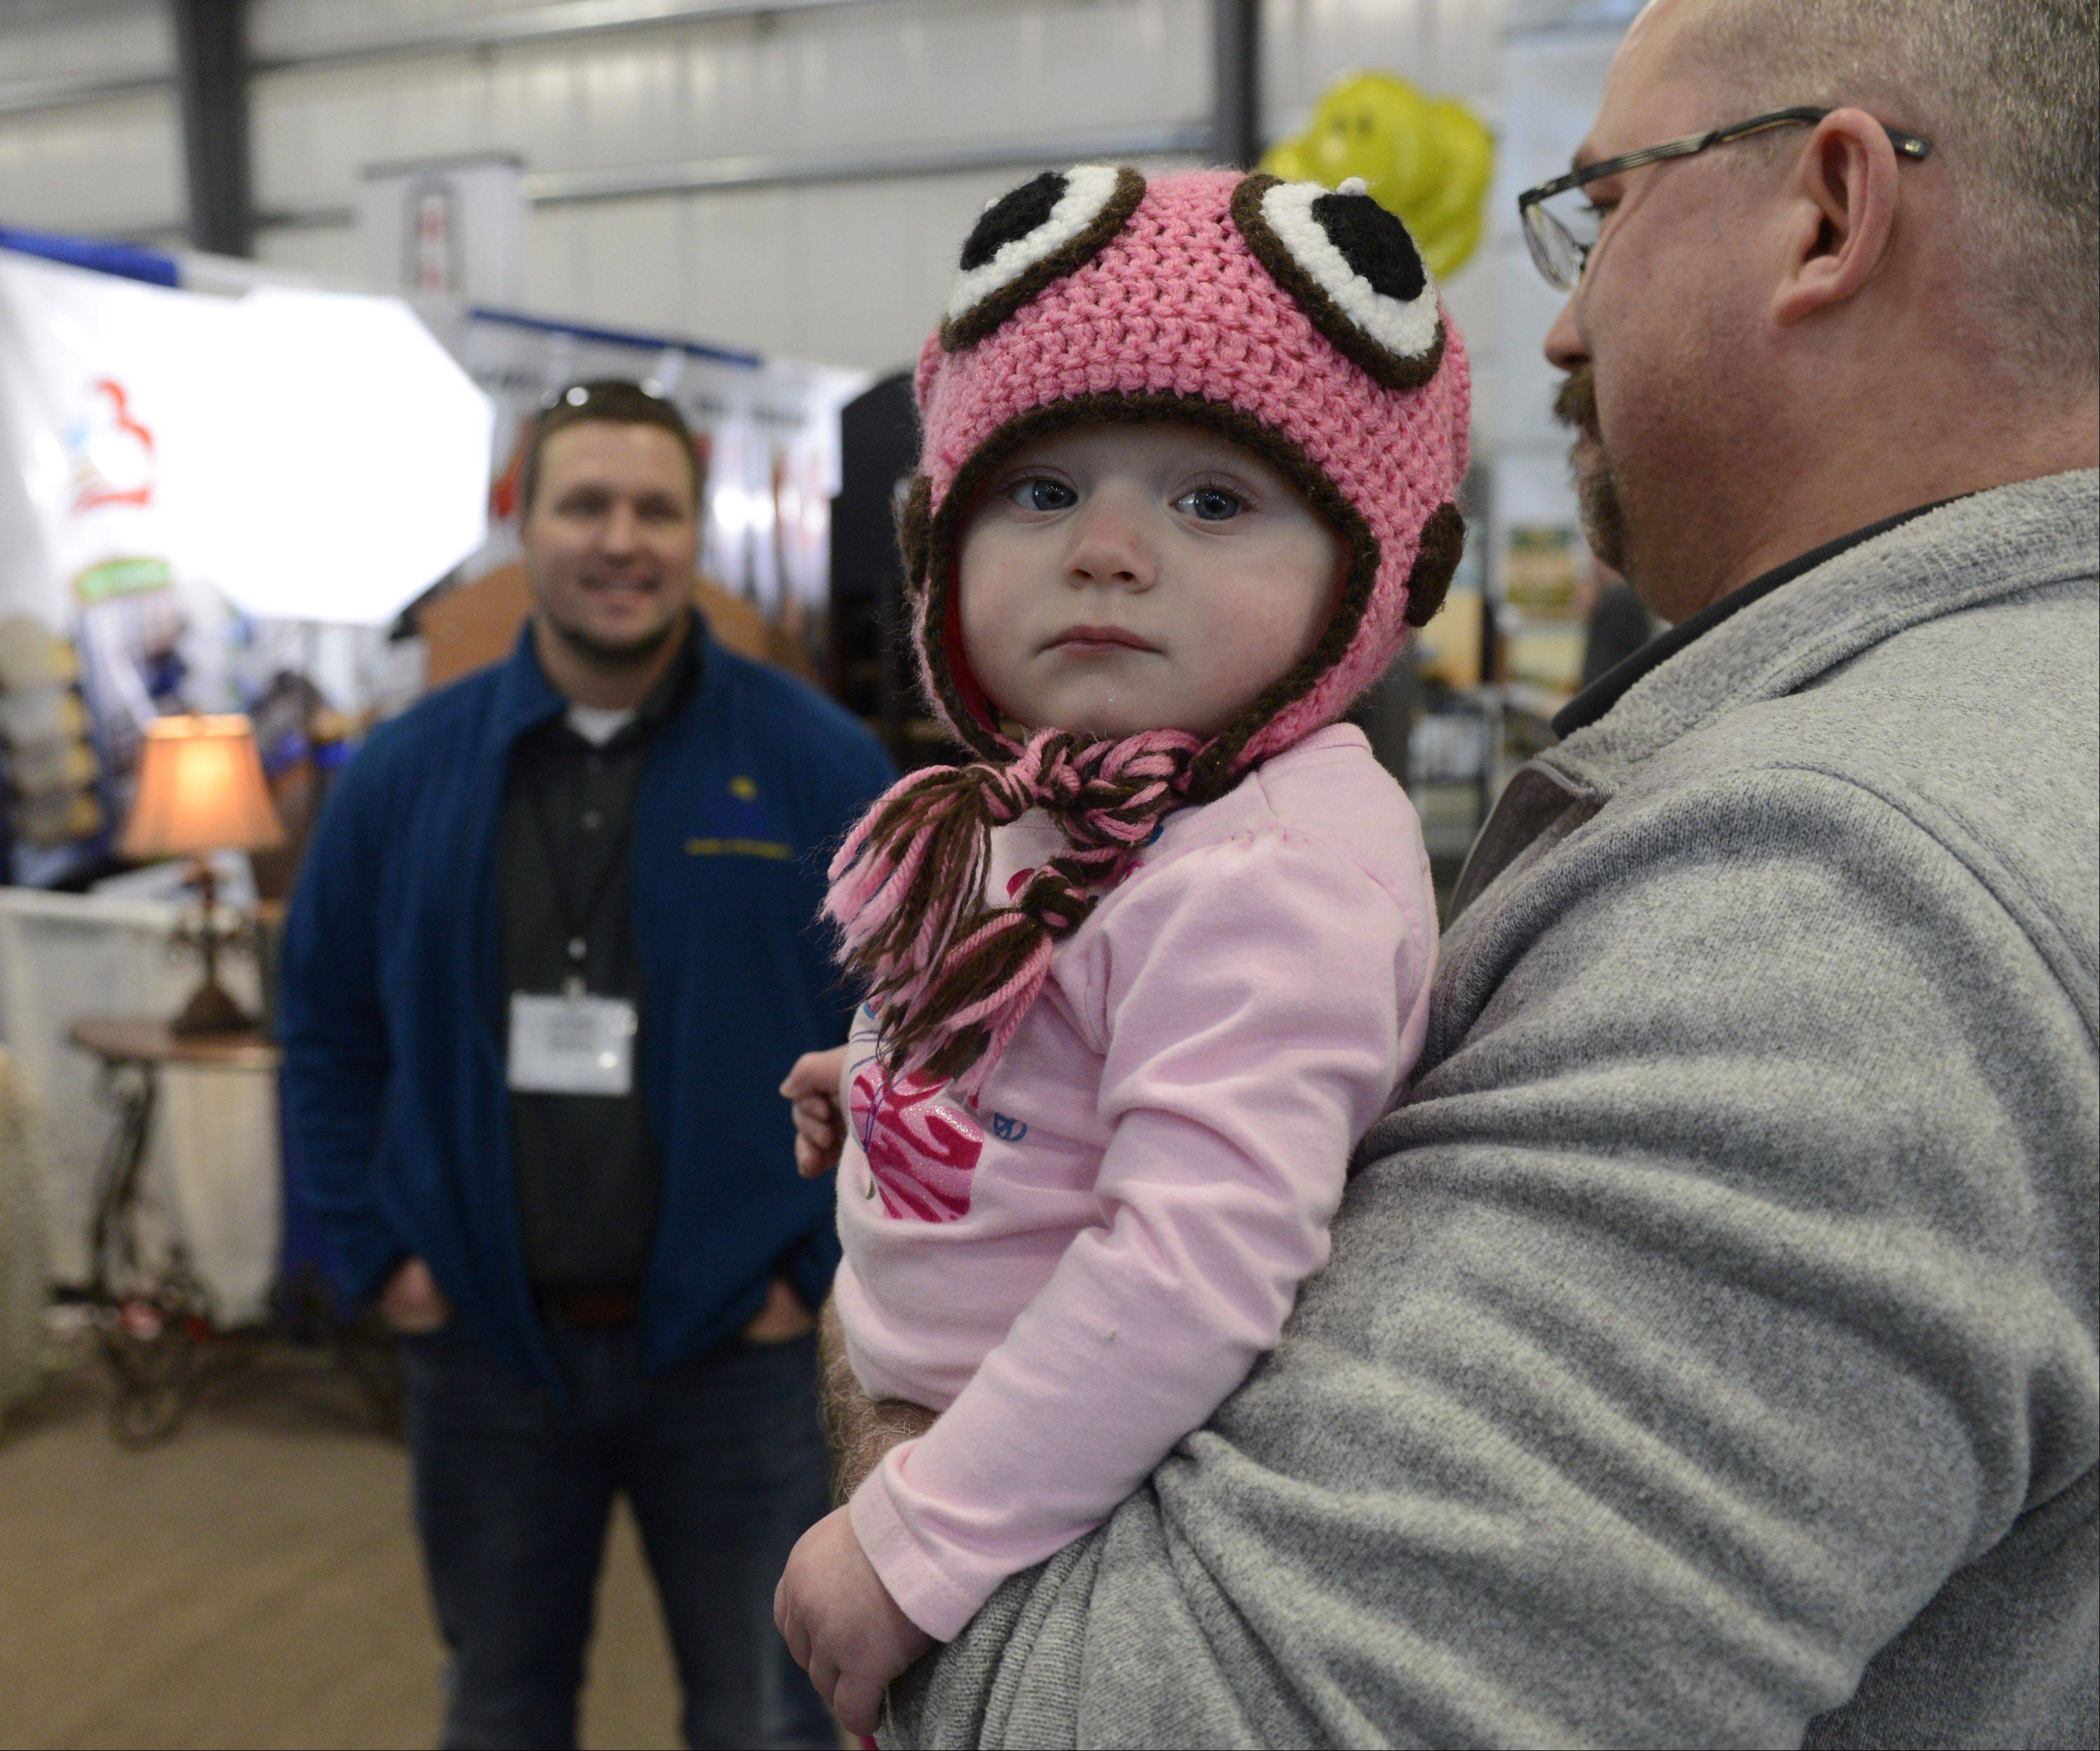 JOE LEWNARD/jlewnard@dailyherald.comSofia Leifer, age 13 months, waits Sunday as her dad, Brett, of Energy Jacket in Crystal Lake, talks with fellow exhibitor Ryan Roggy of RC Contractors of Antioch, during the Home Building and Remodeling Expo at the Lake County Fairgrounds in Grayslake. The event featured demonstrations and presentations at more than 100 booths.